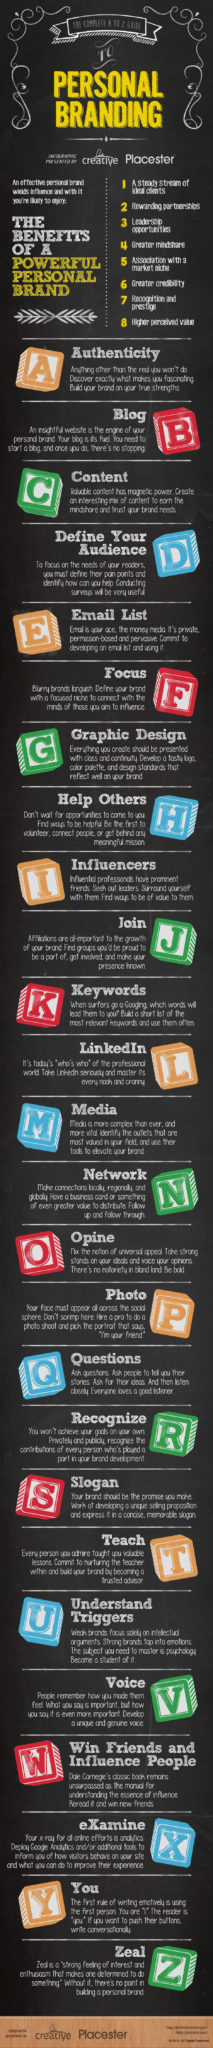 the-complete-a-to-z-guide-to-personal-branding-full